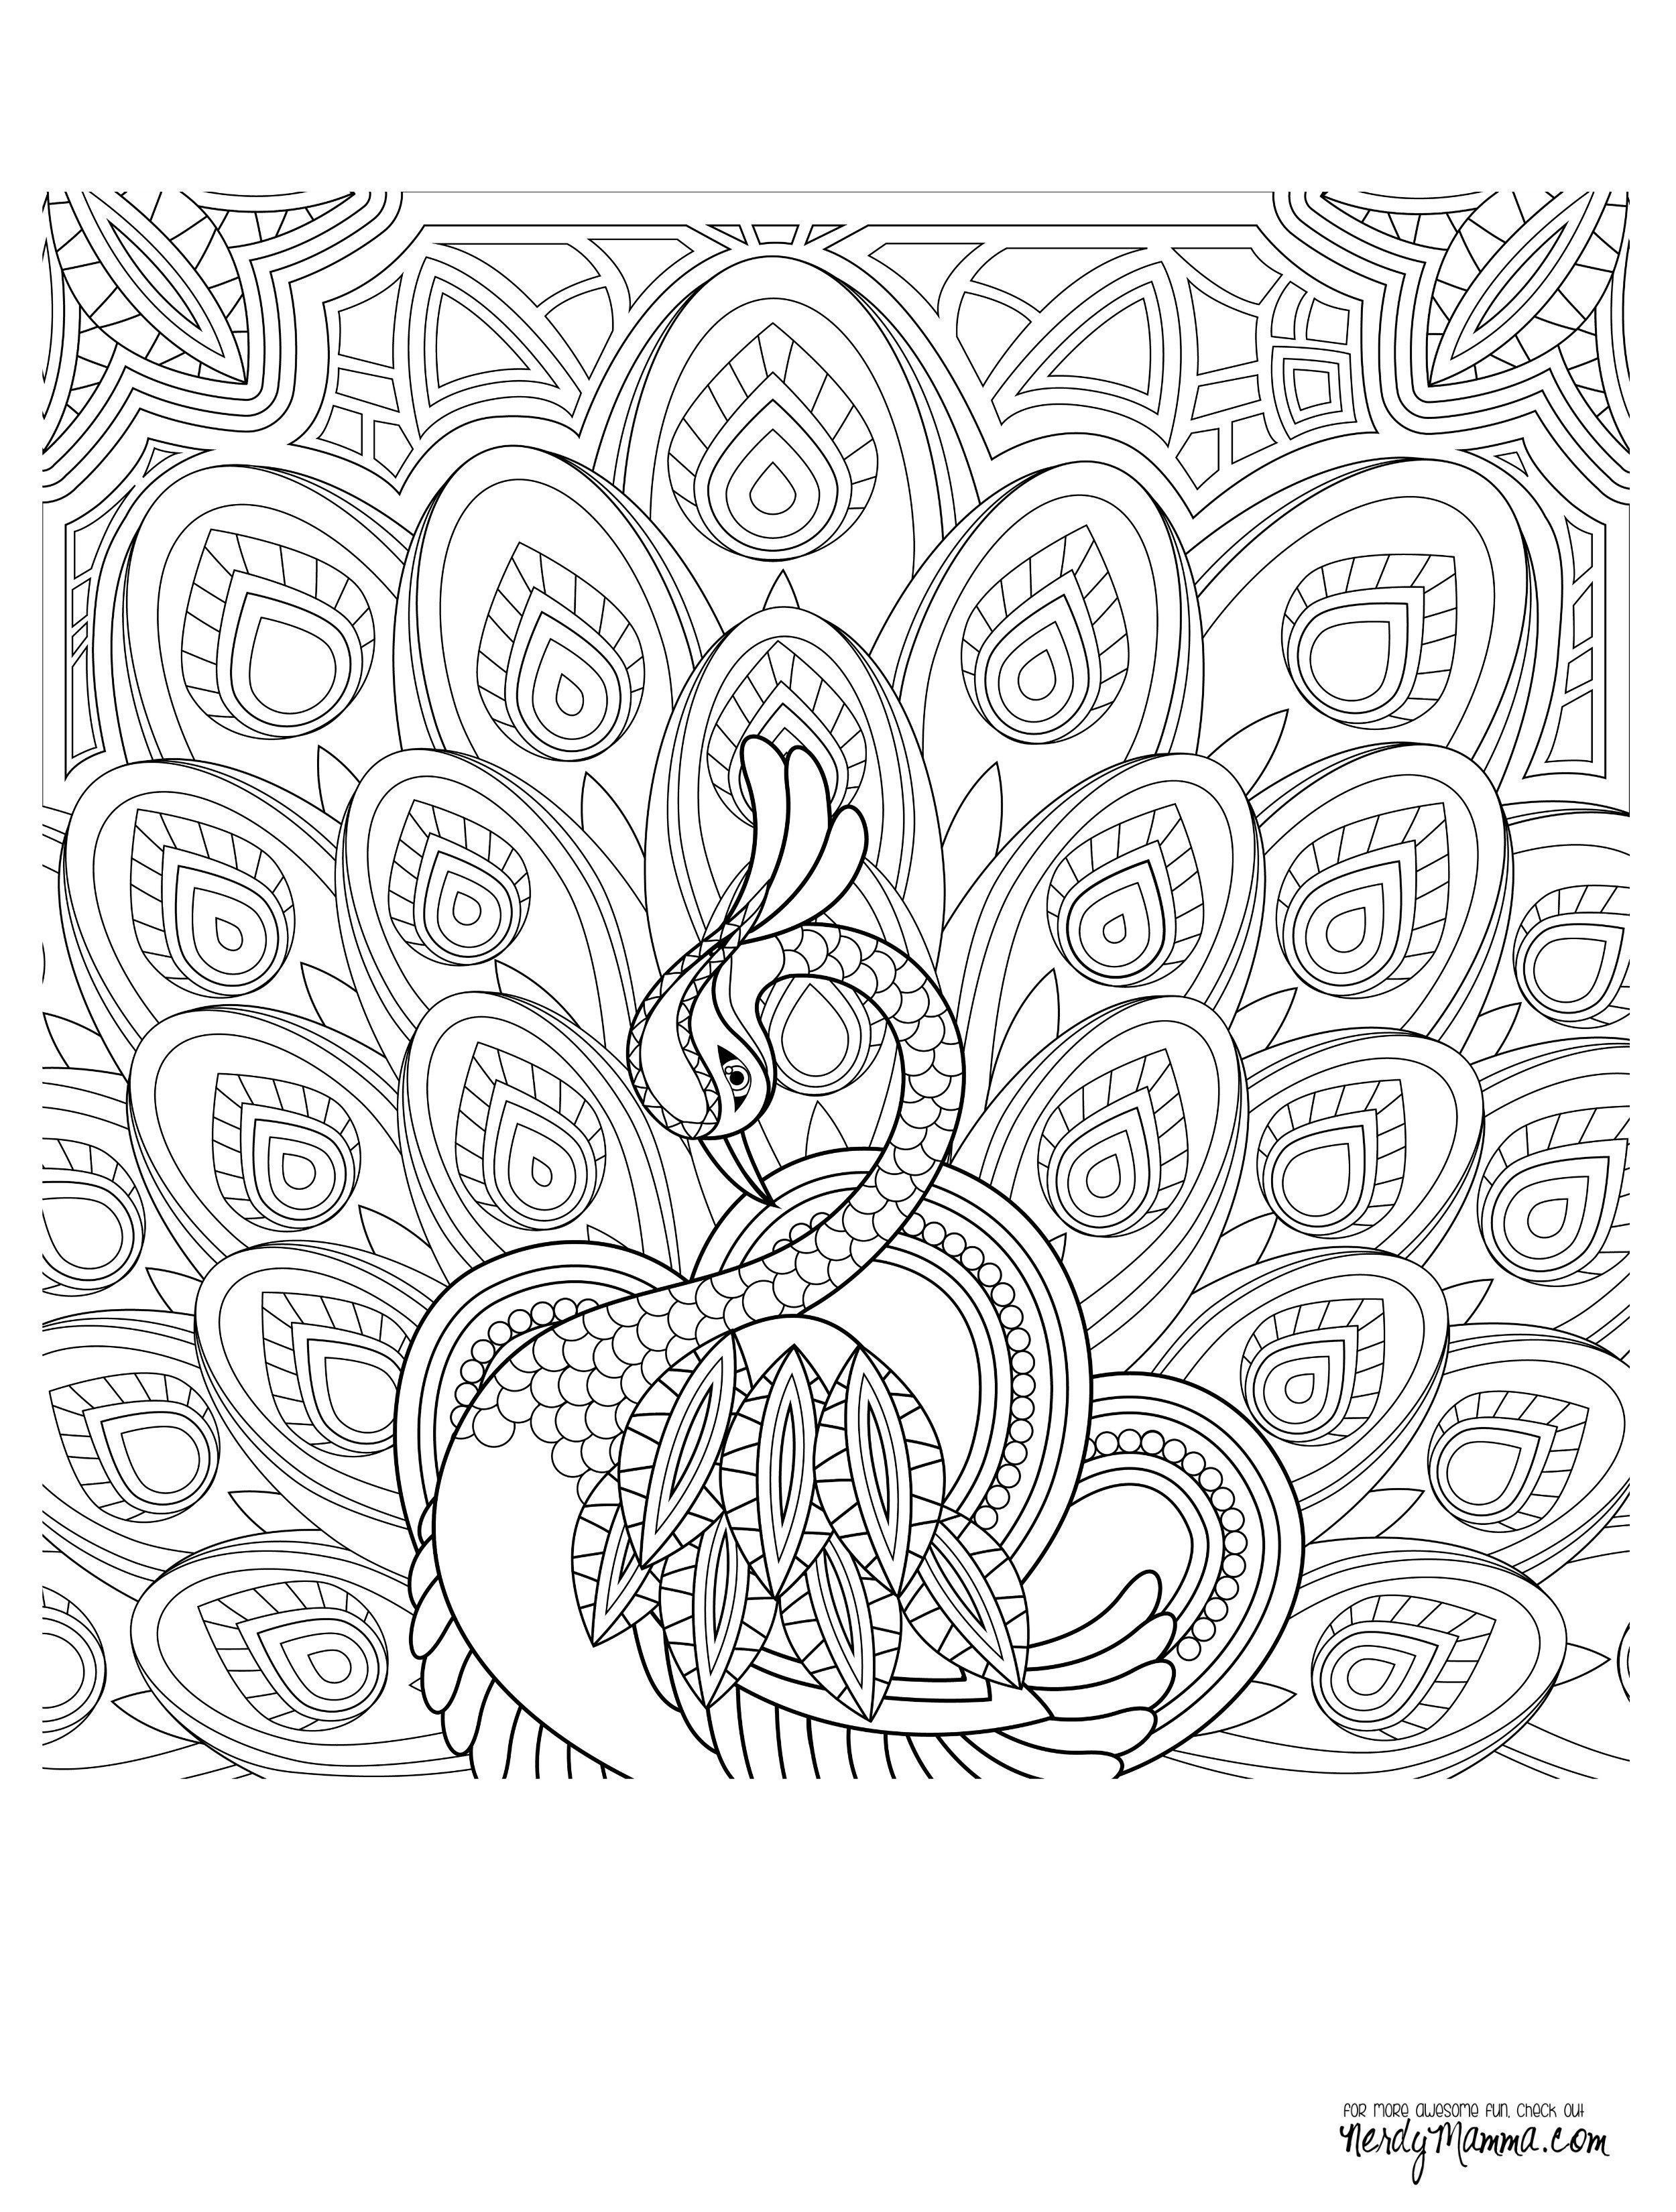 70 Inspirational Images Of Christmas Coloring Books Bulk Check More At Https Www Mercere Mandala Coloring Pages Detailed Coloring Pages Animal Coloring Pages